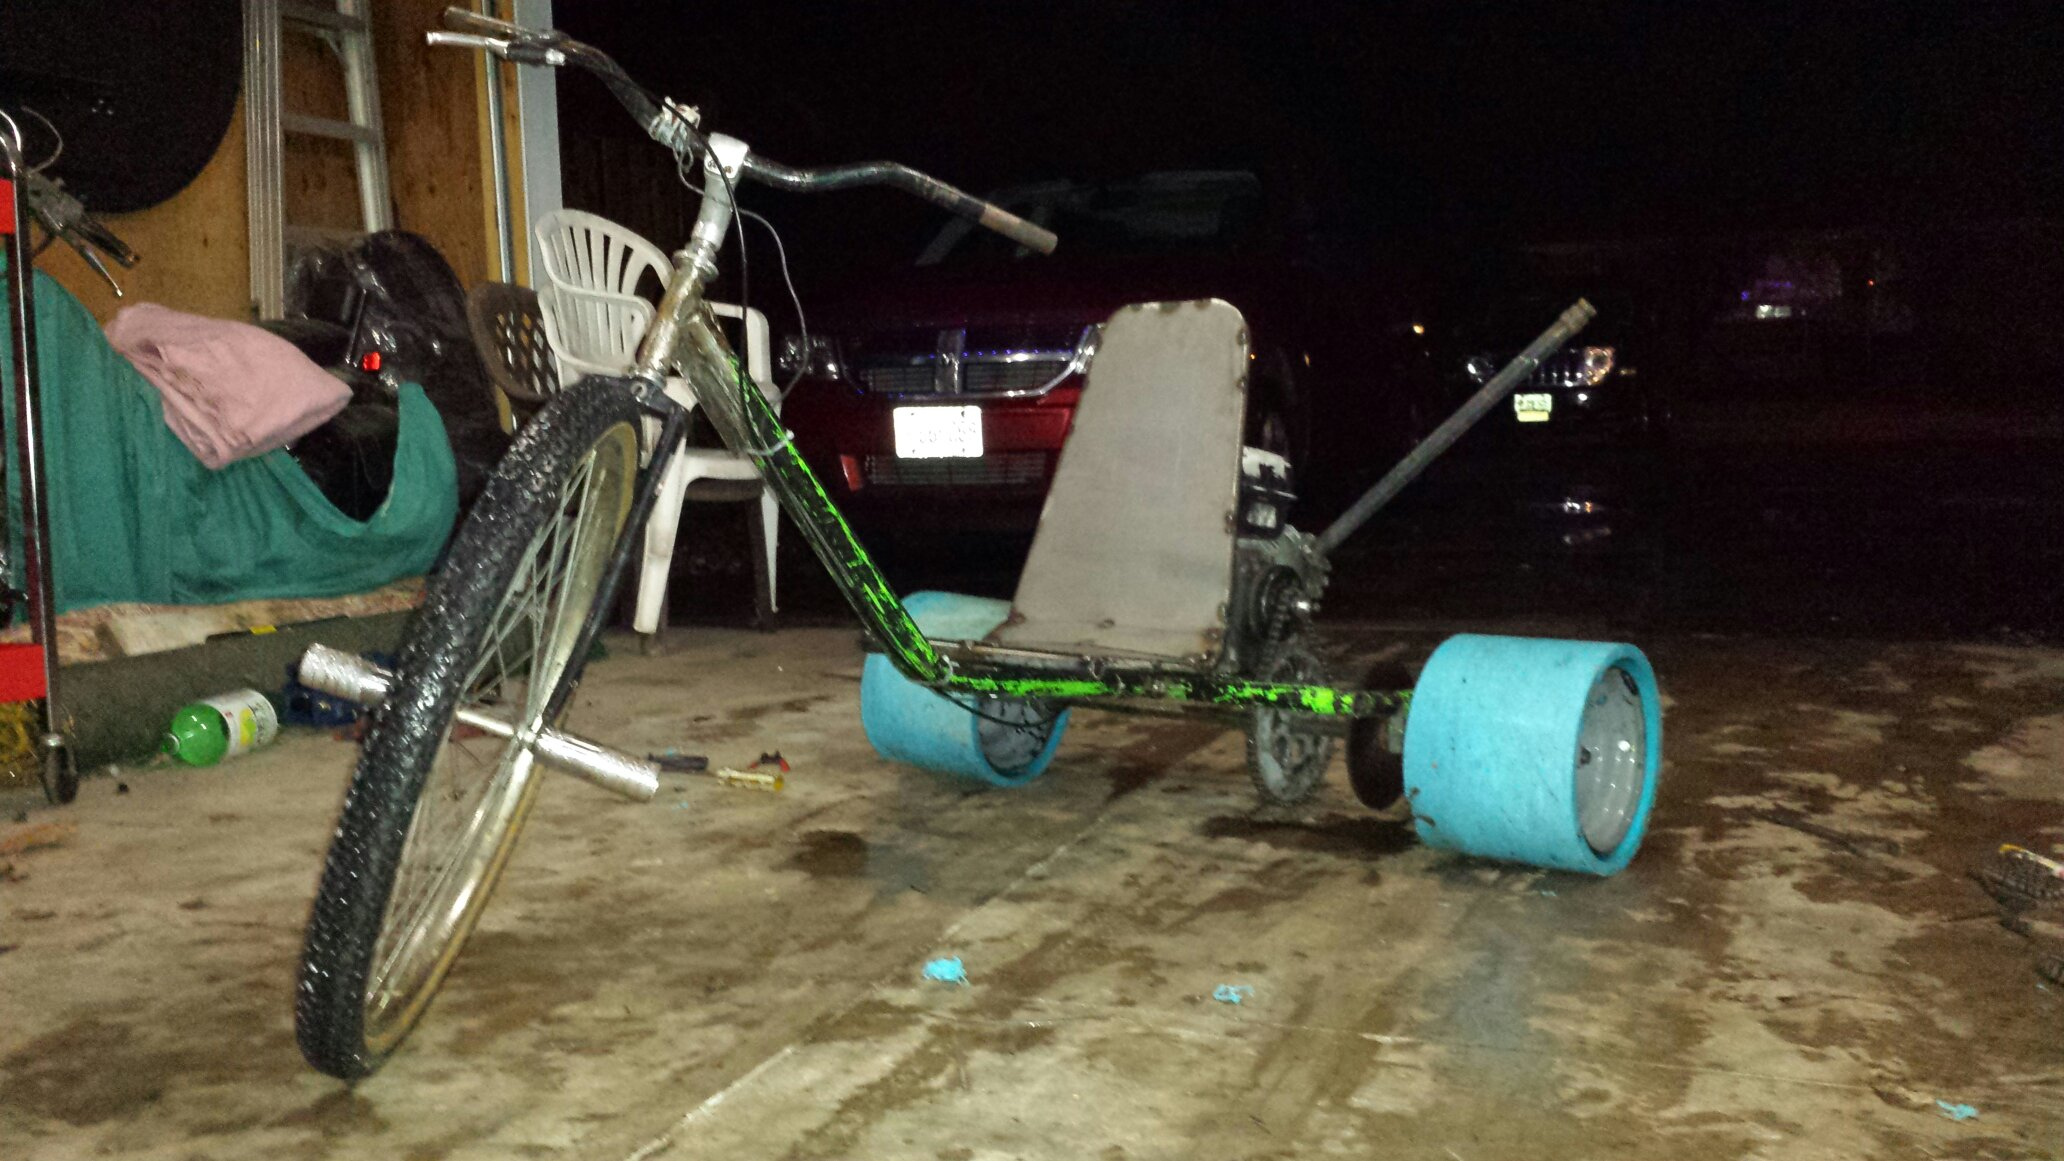 Drift trike made from an old go kart frame.